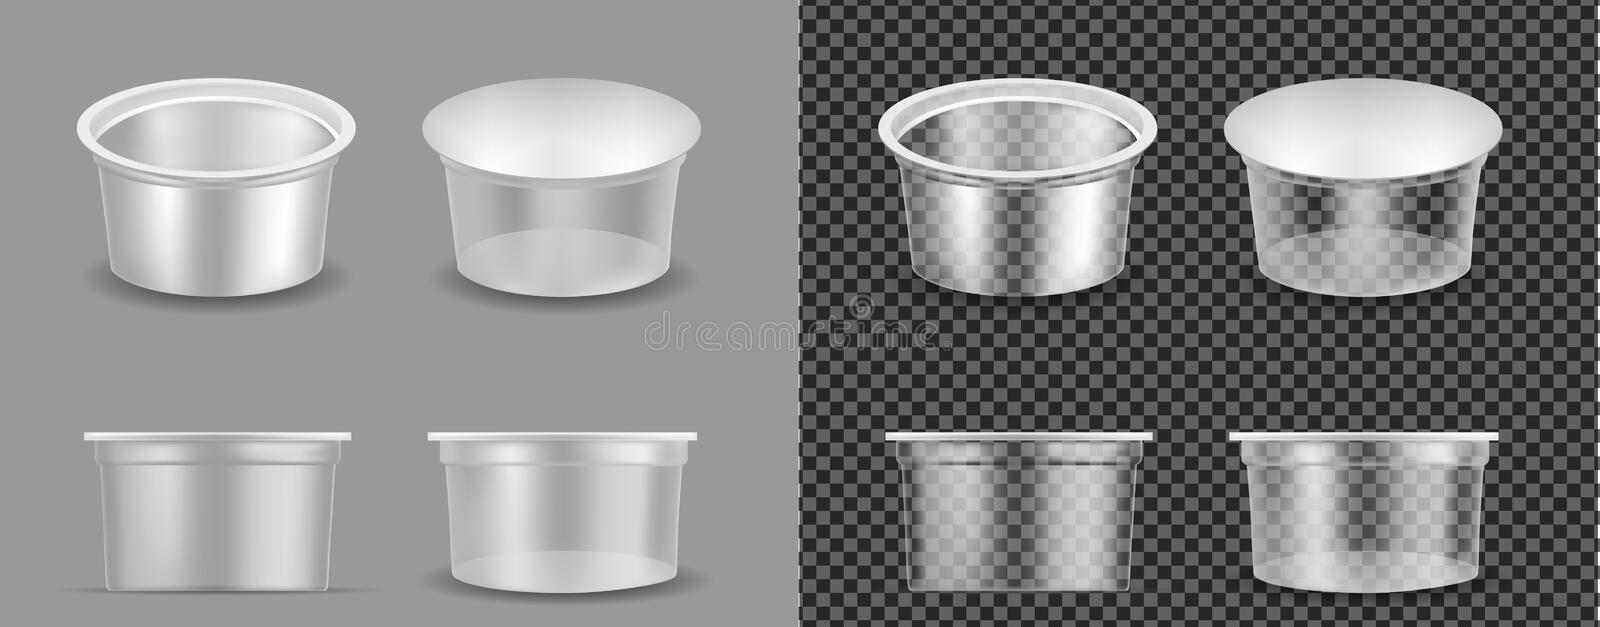 Transparent empty plastic container for yogurt. Packaging for sour cream and sauce royalty free illustration